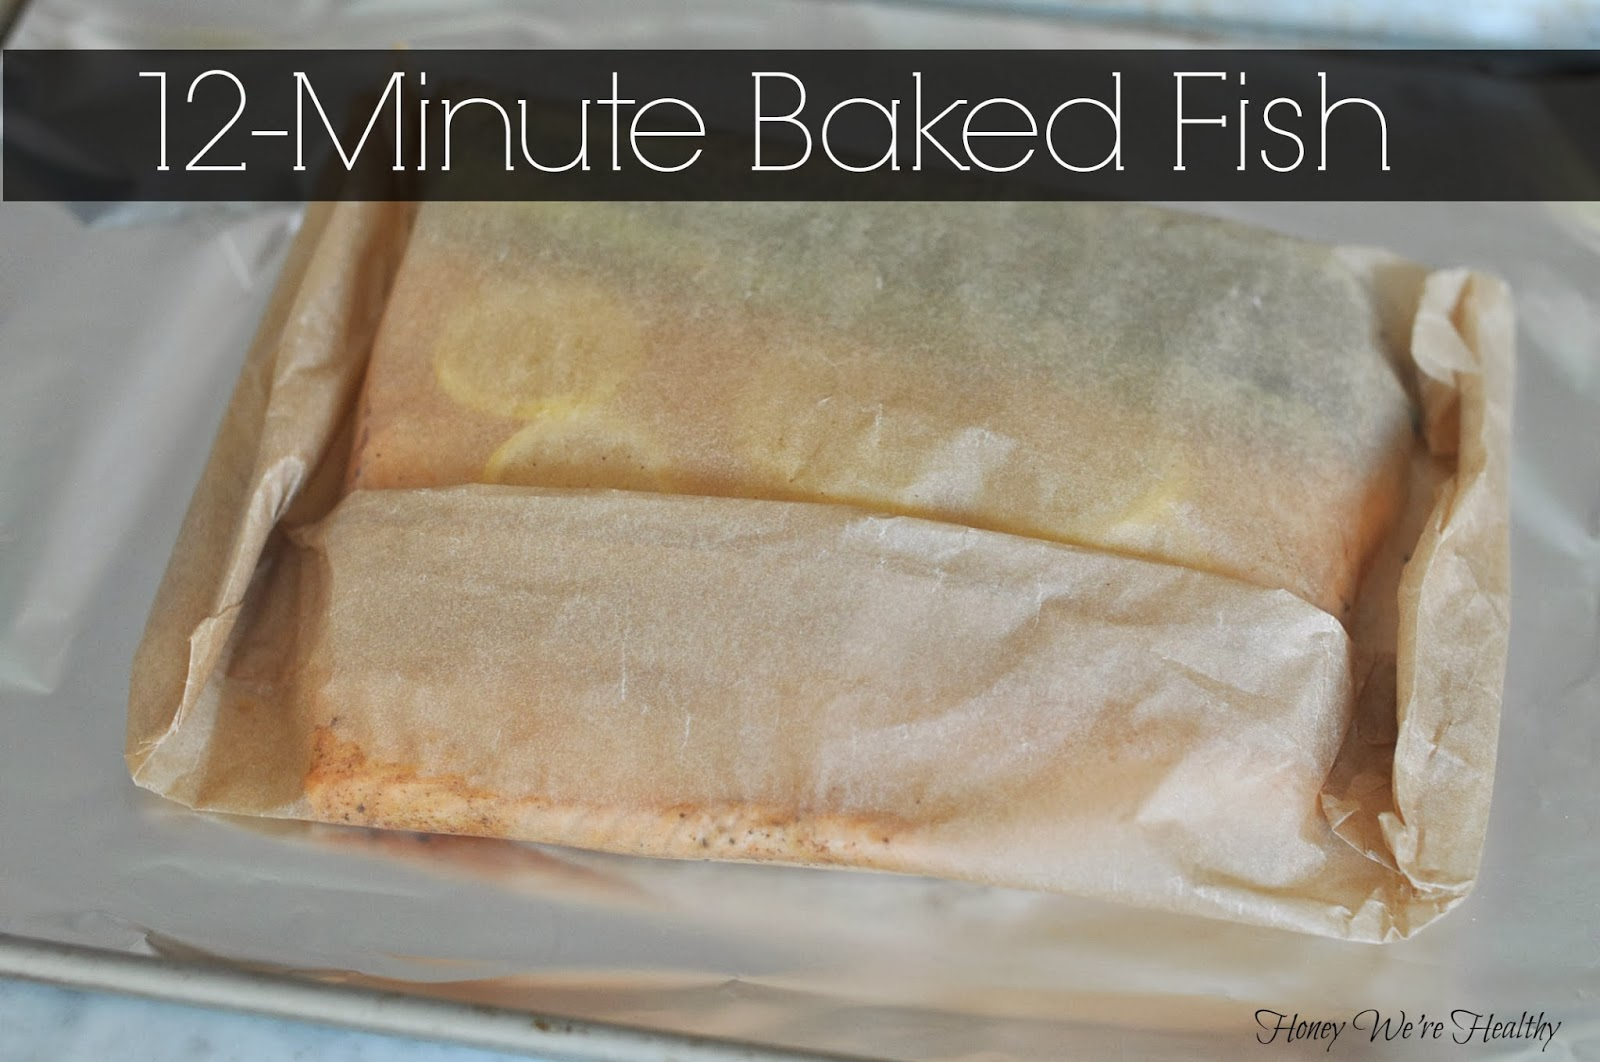 ... We're Healthy: Baked Fish in Parchment Paper // Fish en Papillote